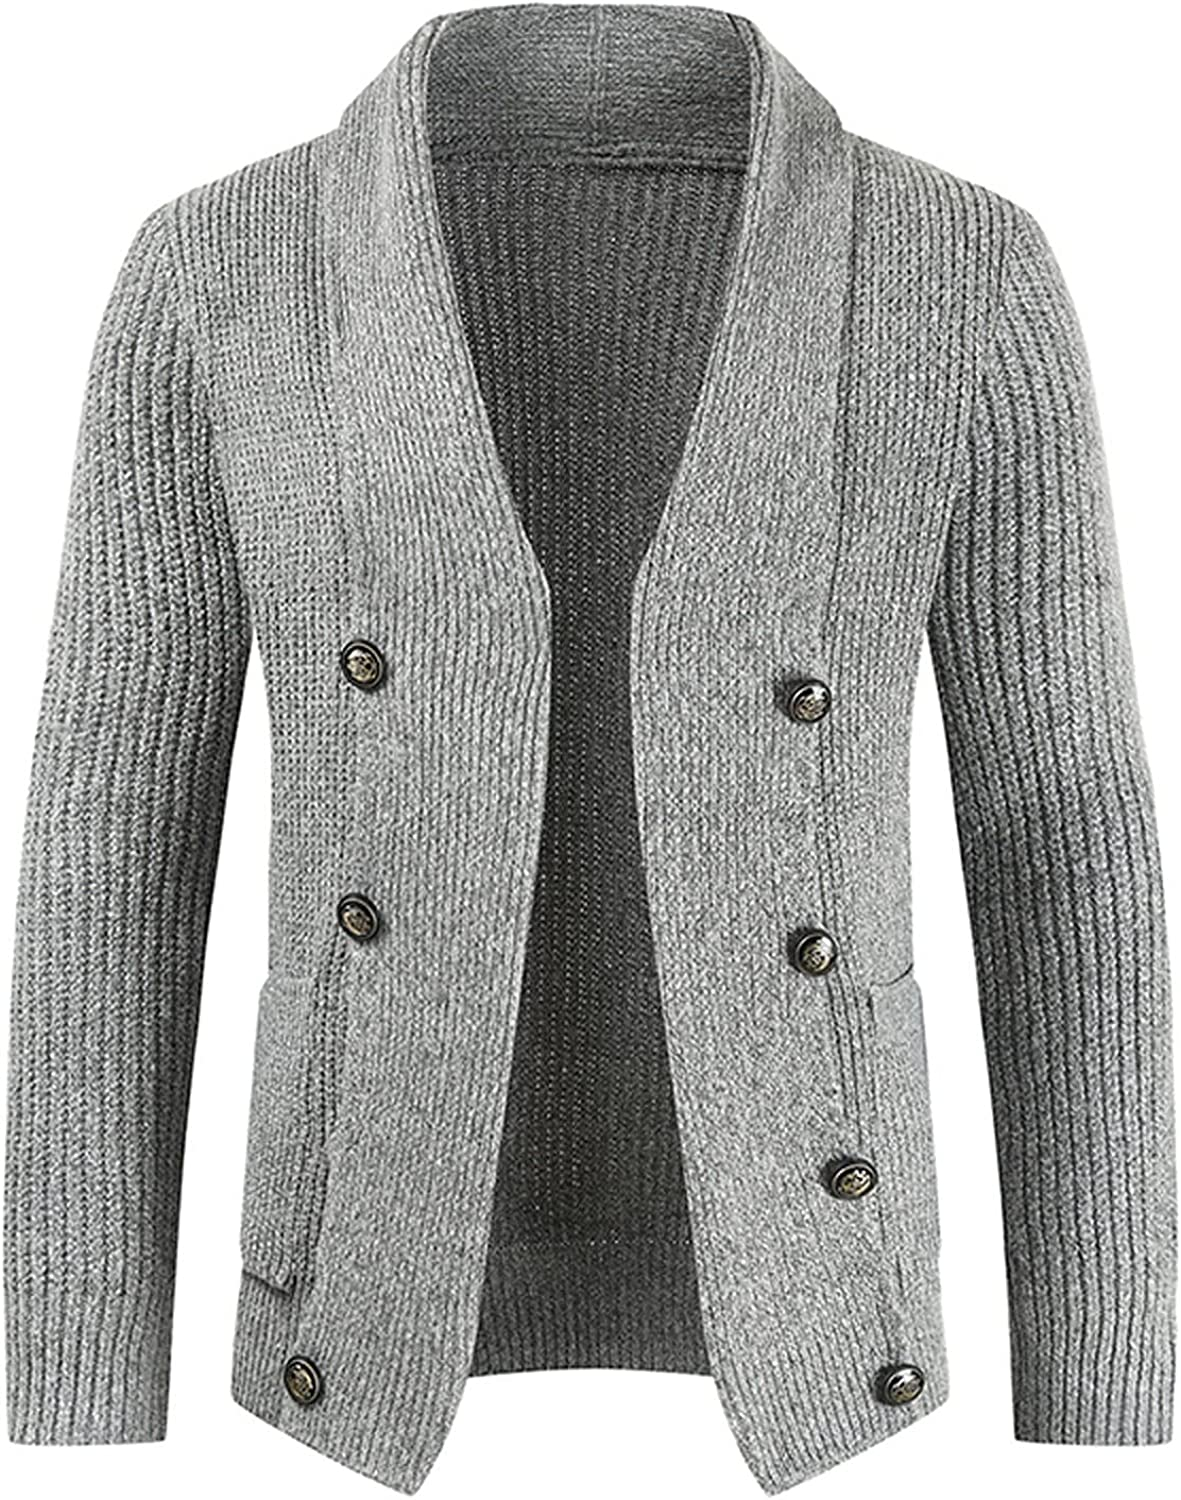 Huangse Mens Shawl Collar Knitted Cardigan Button Down Raglan Sleeve Ribbed Hem V Neck Sweaters Autumn Winter Knit Jacket